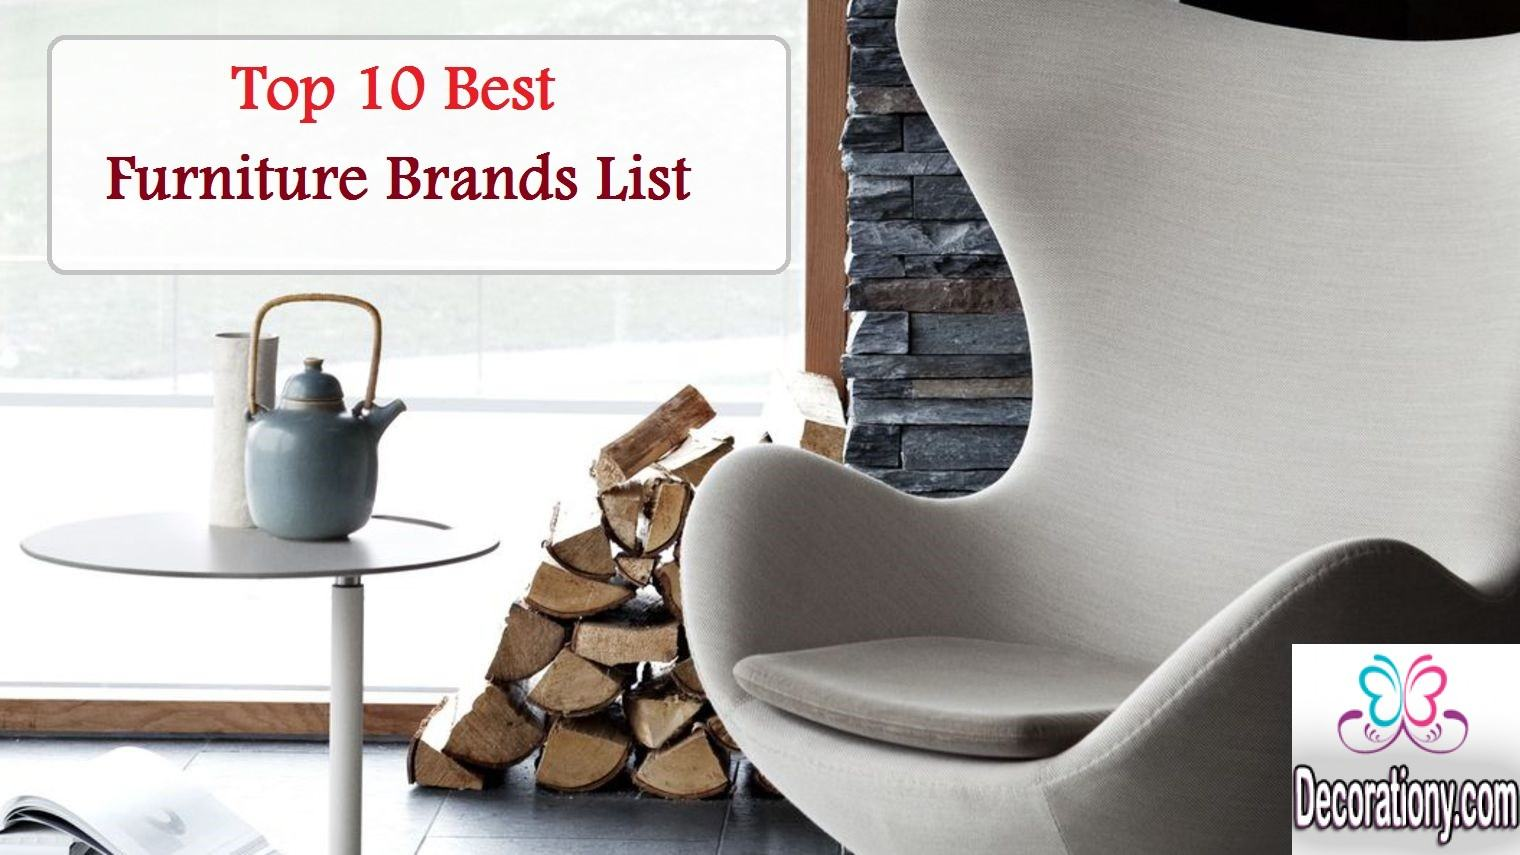 Top 10 Best Furniture Brands List